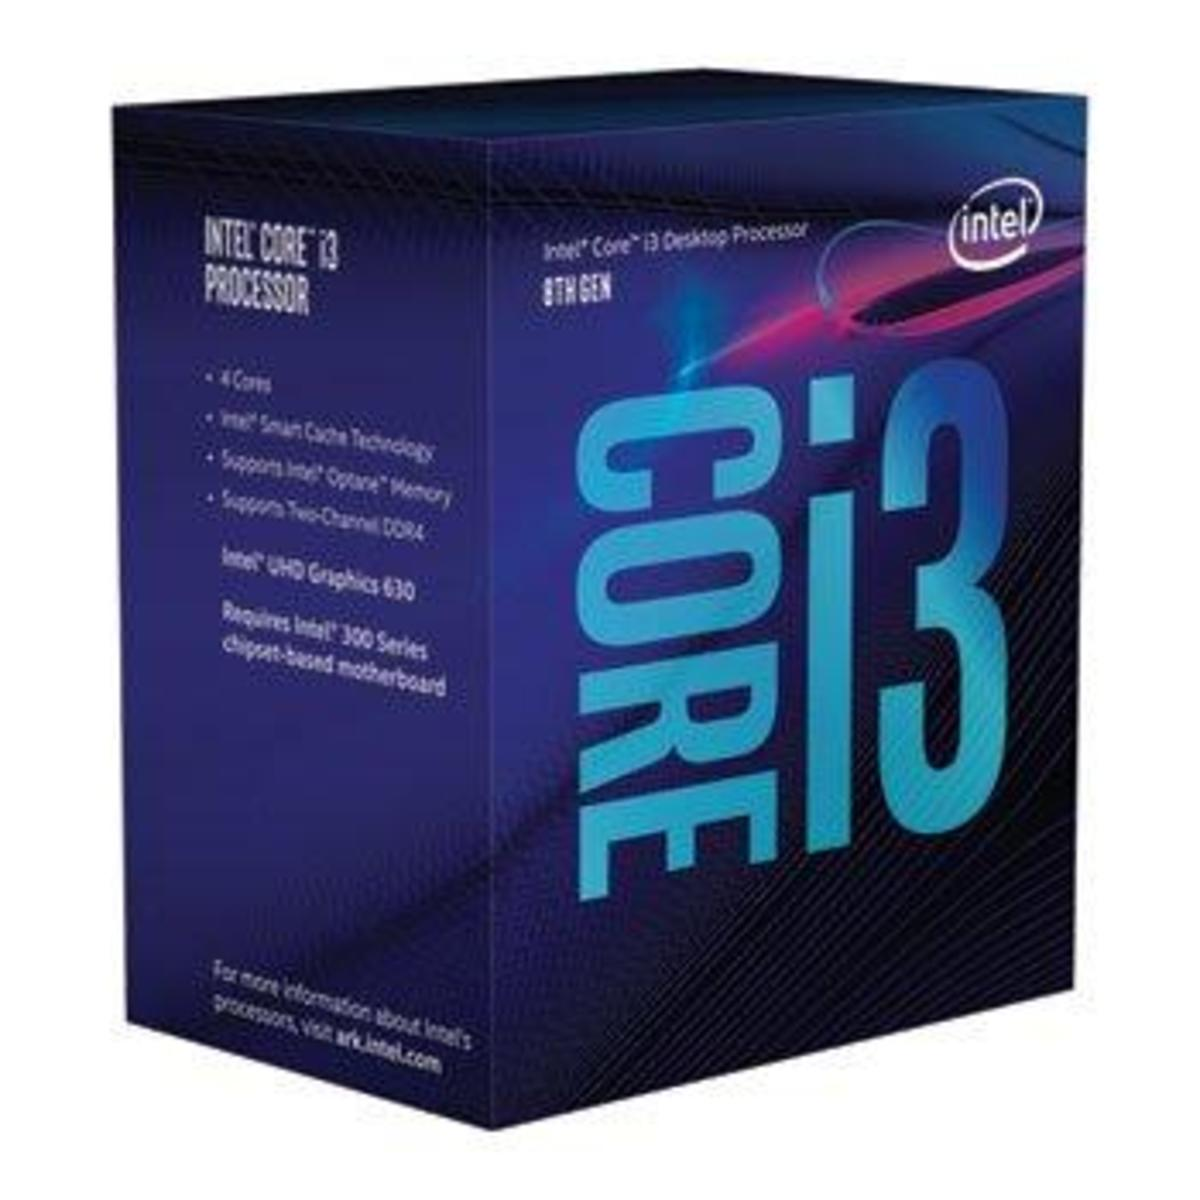 $500 Budget Intel Core i3-8100 and Radeon RX 550 Gaming PC Review